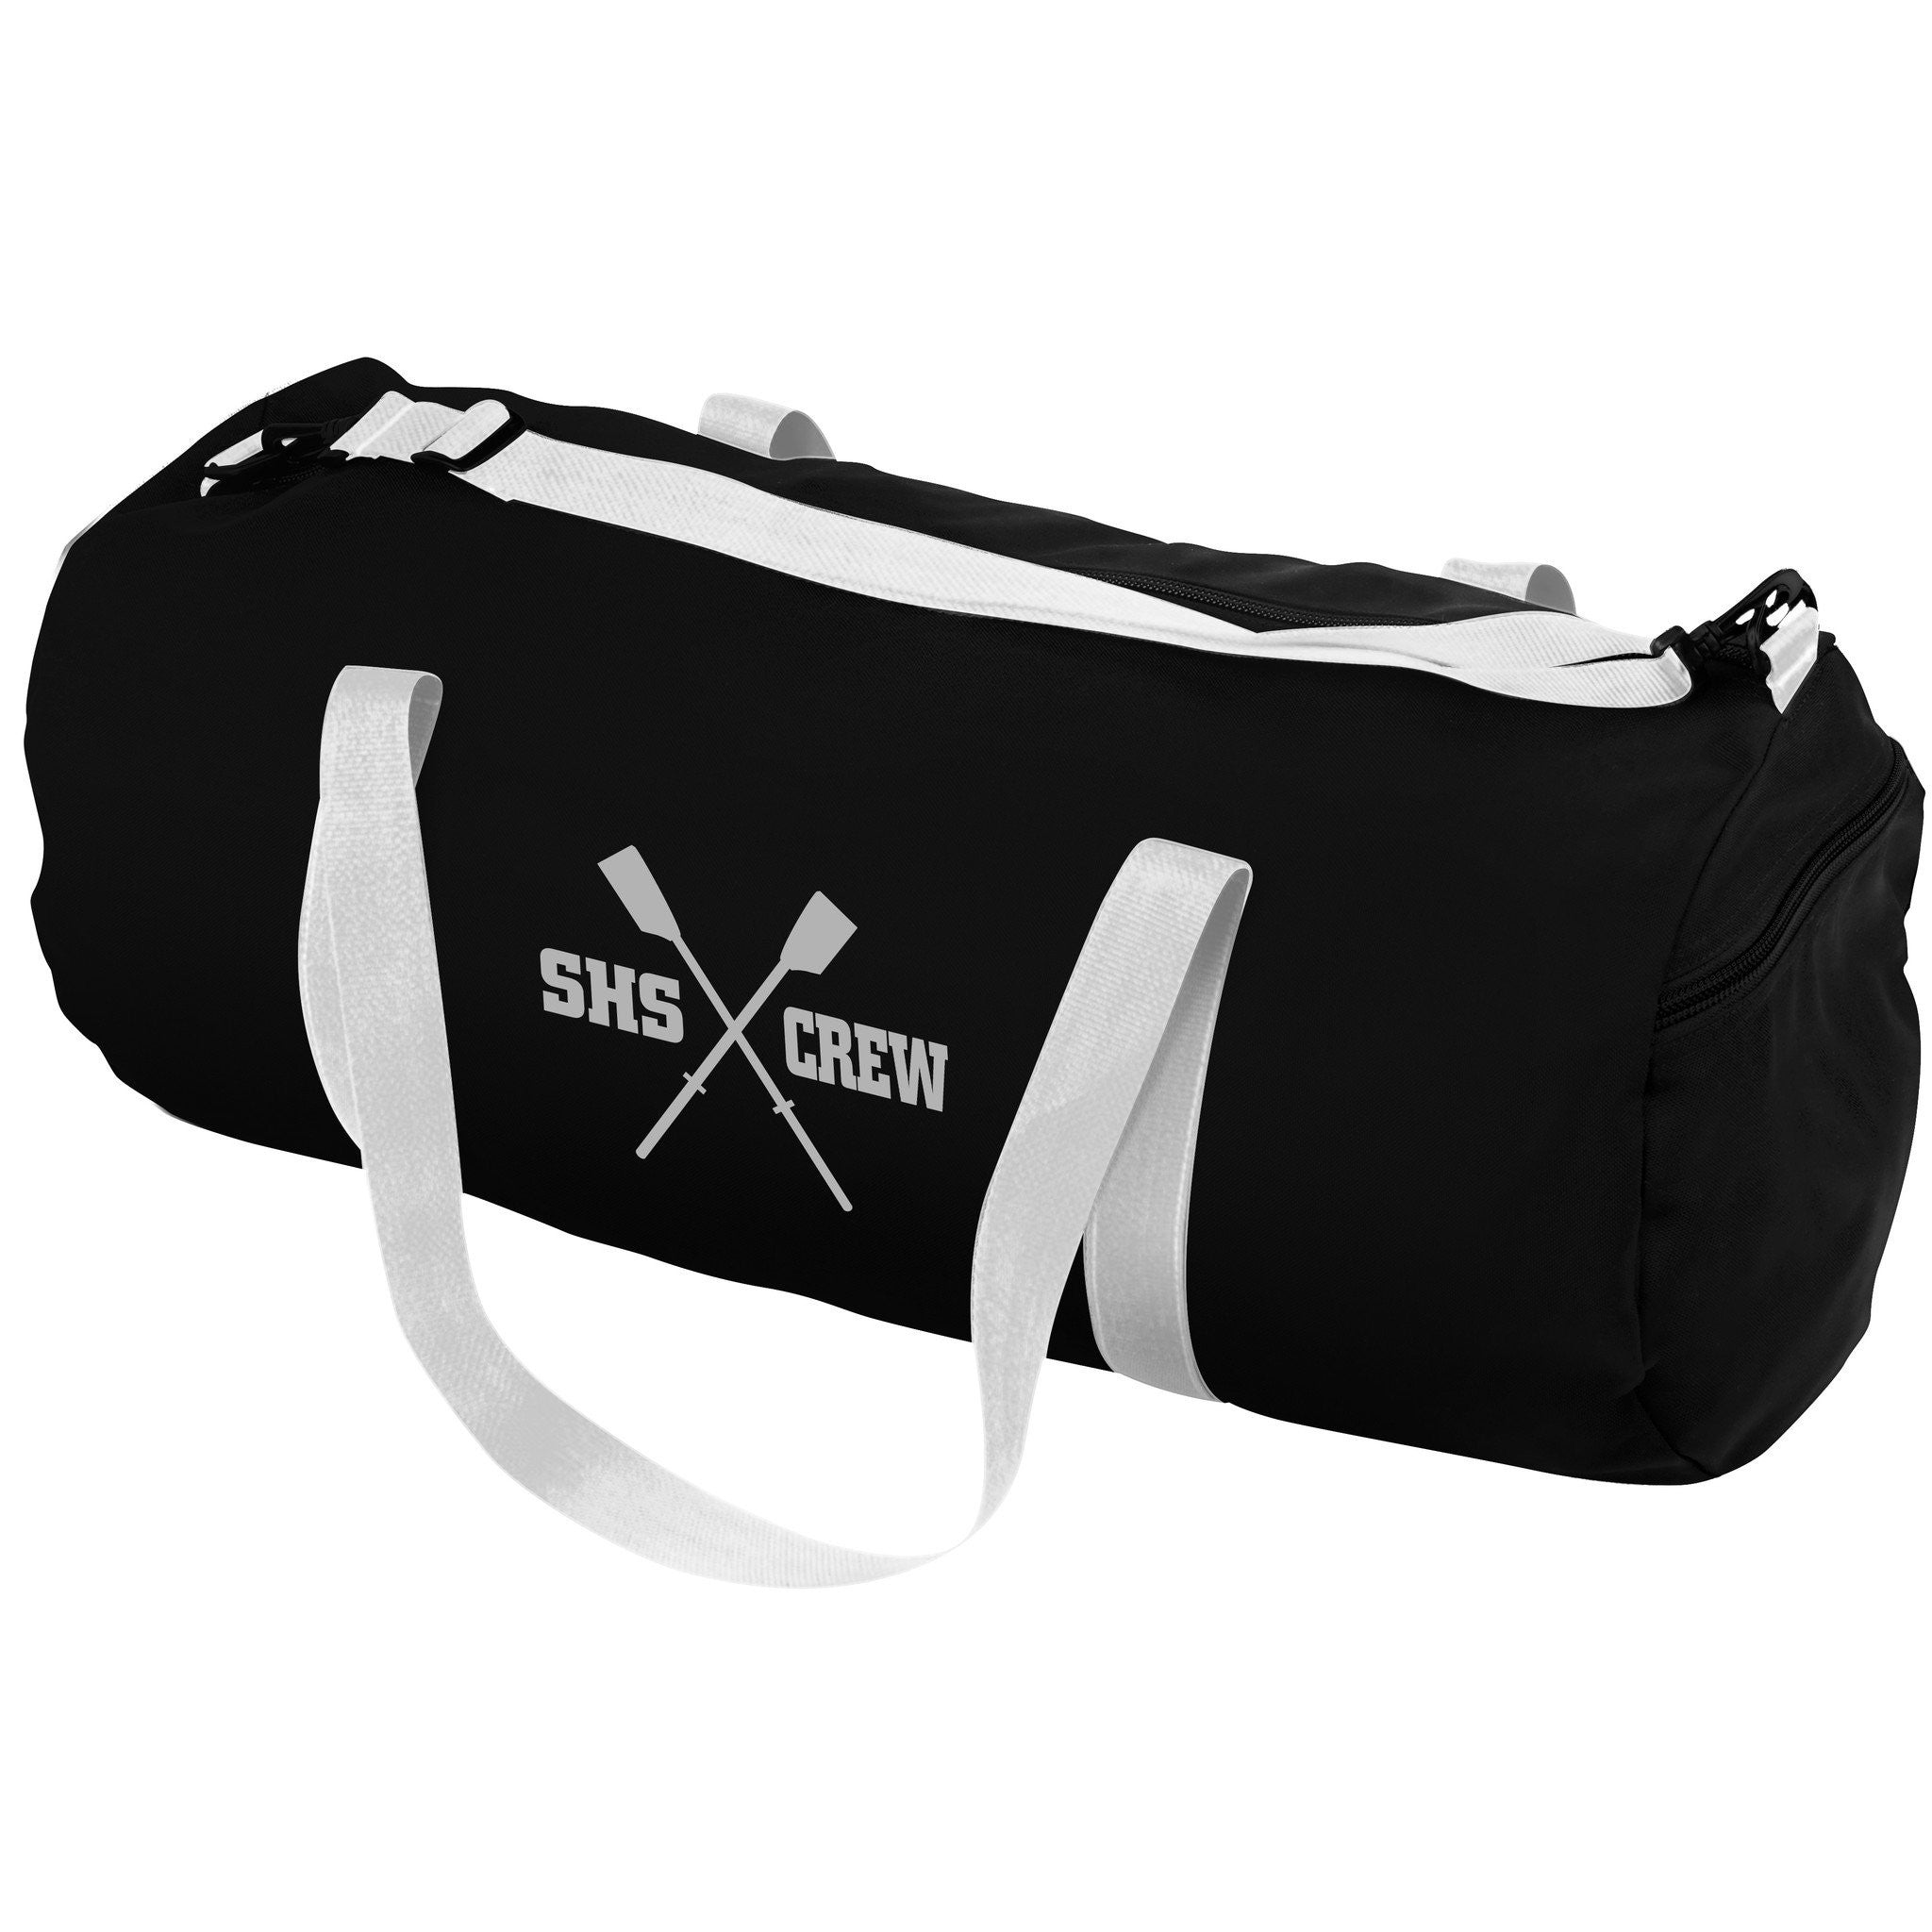 Team Duffel Bag (Large)